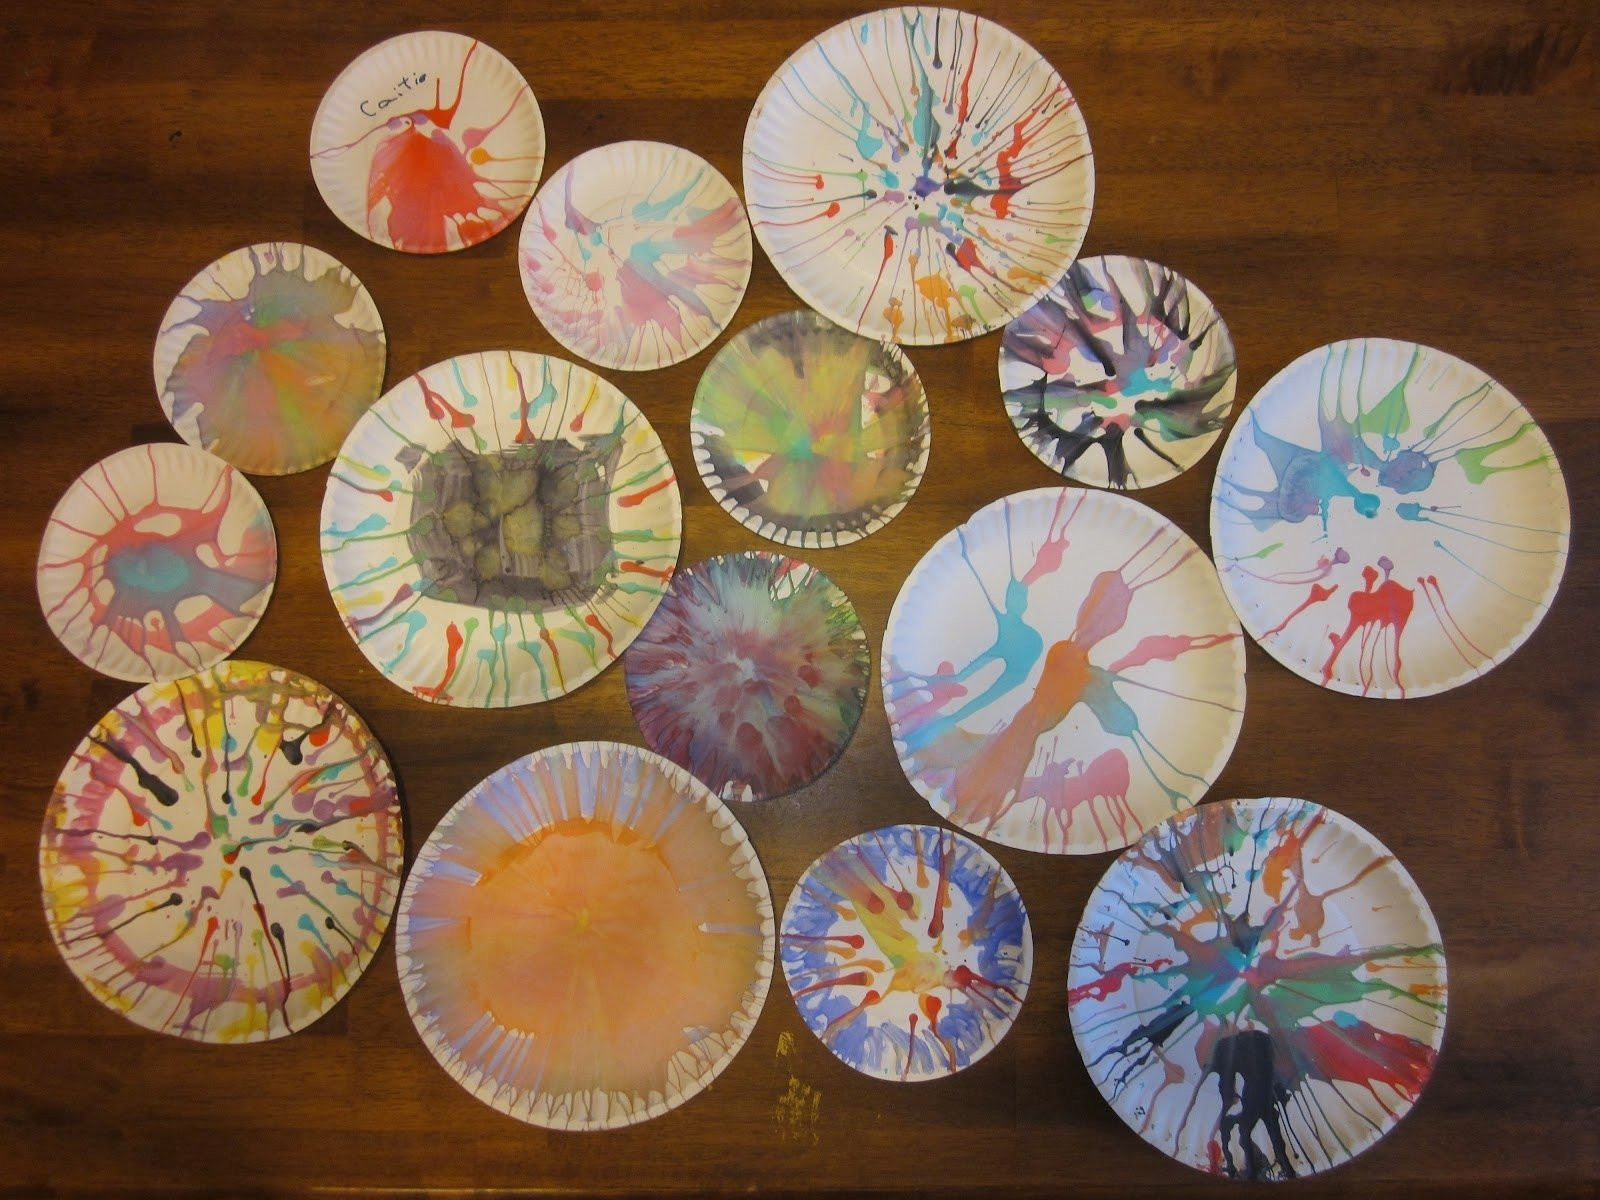 Craft Activities For Adults  10 Attractive Art And Craft Ideas For Adults 2019